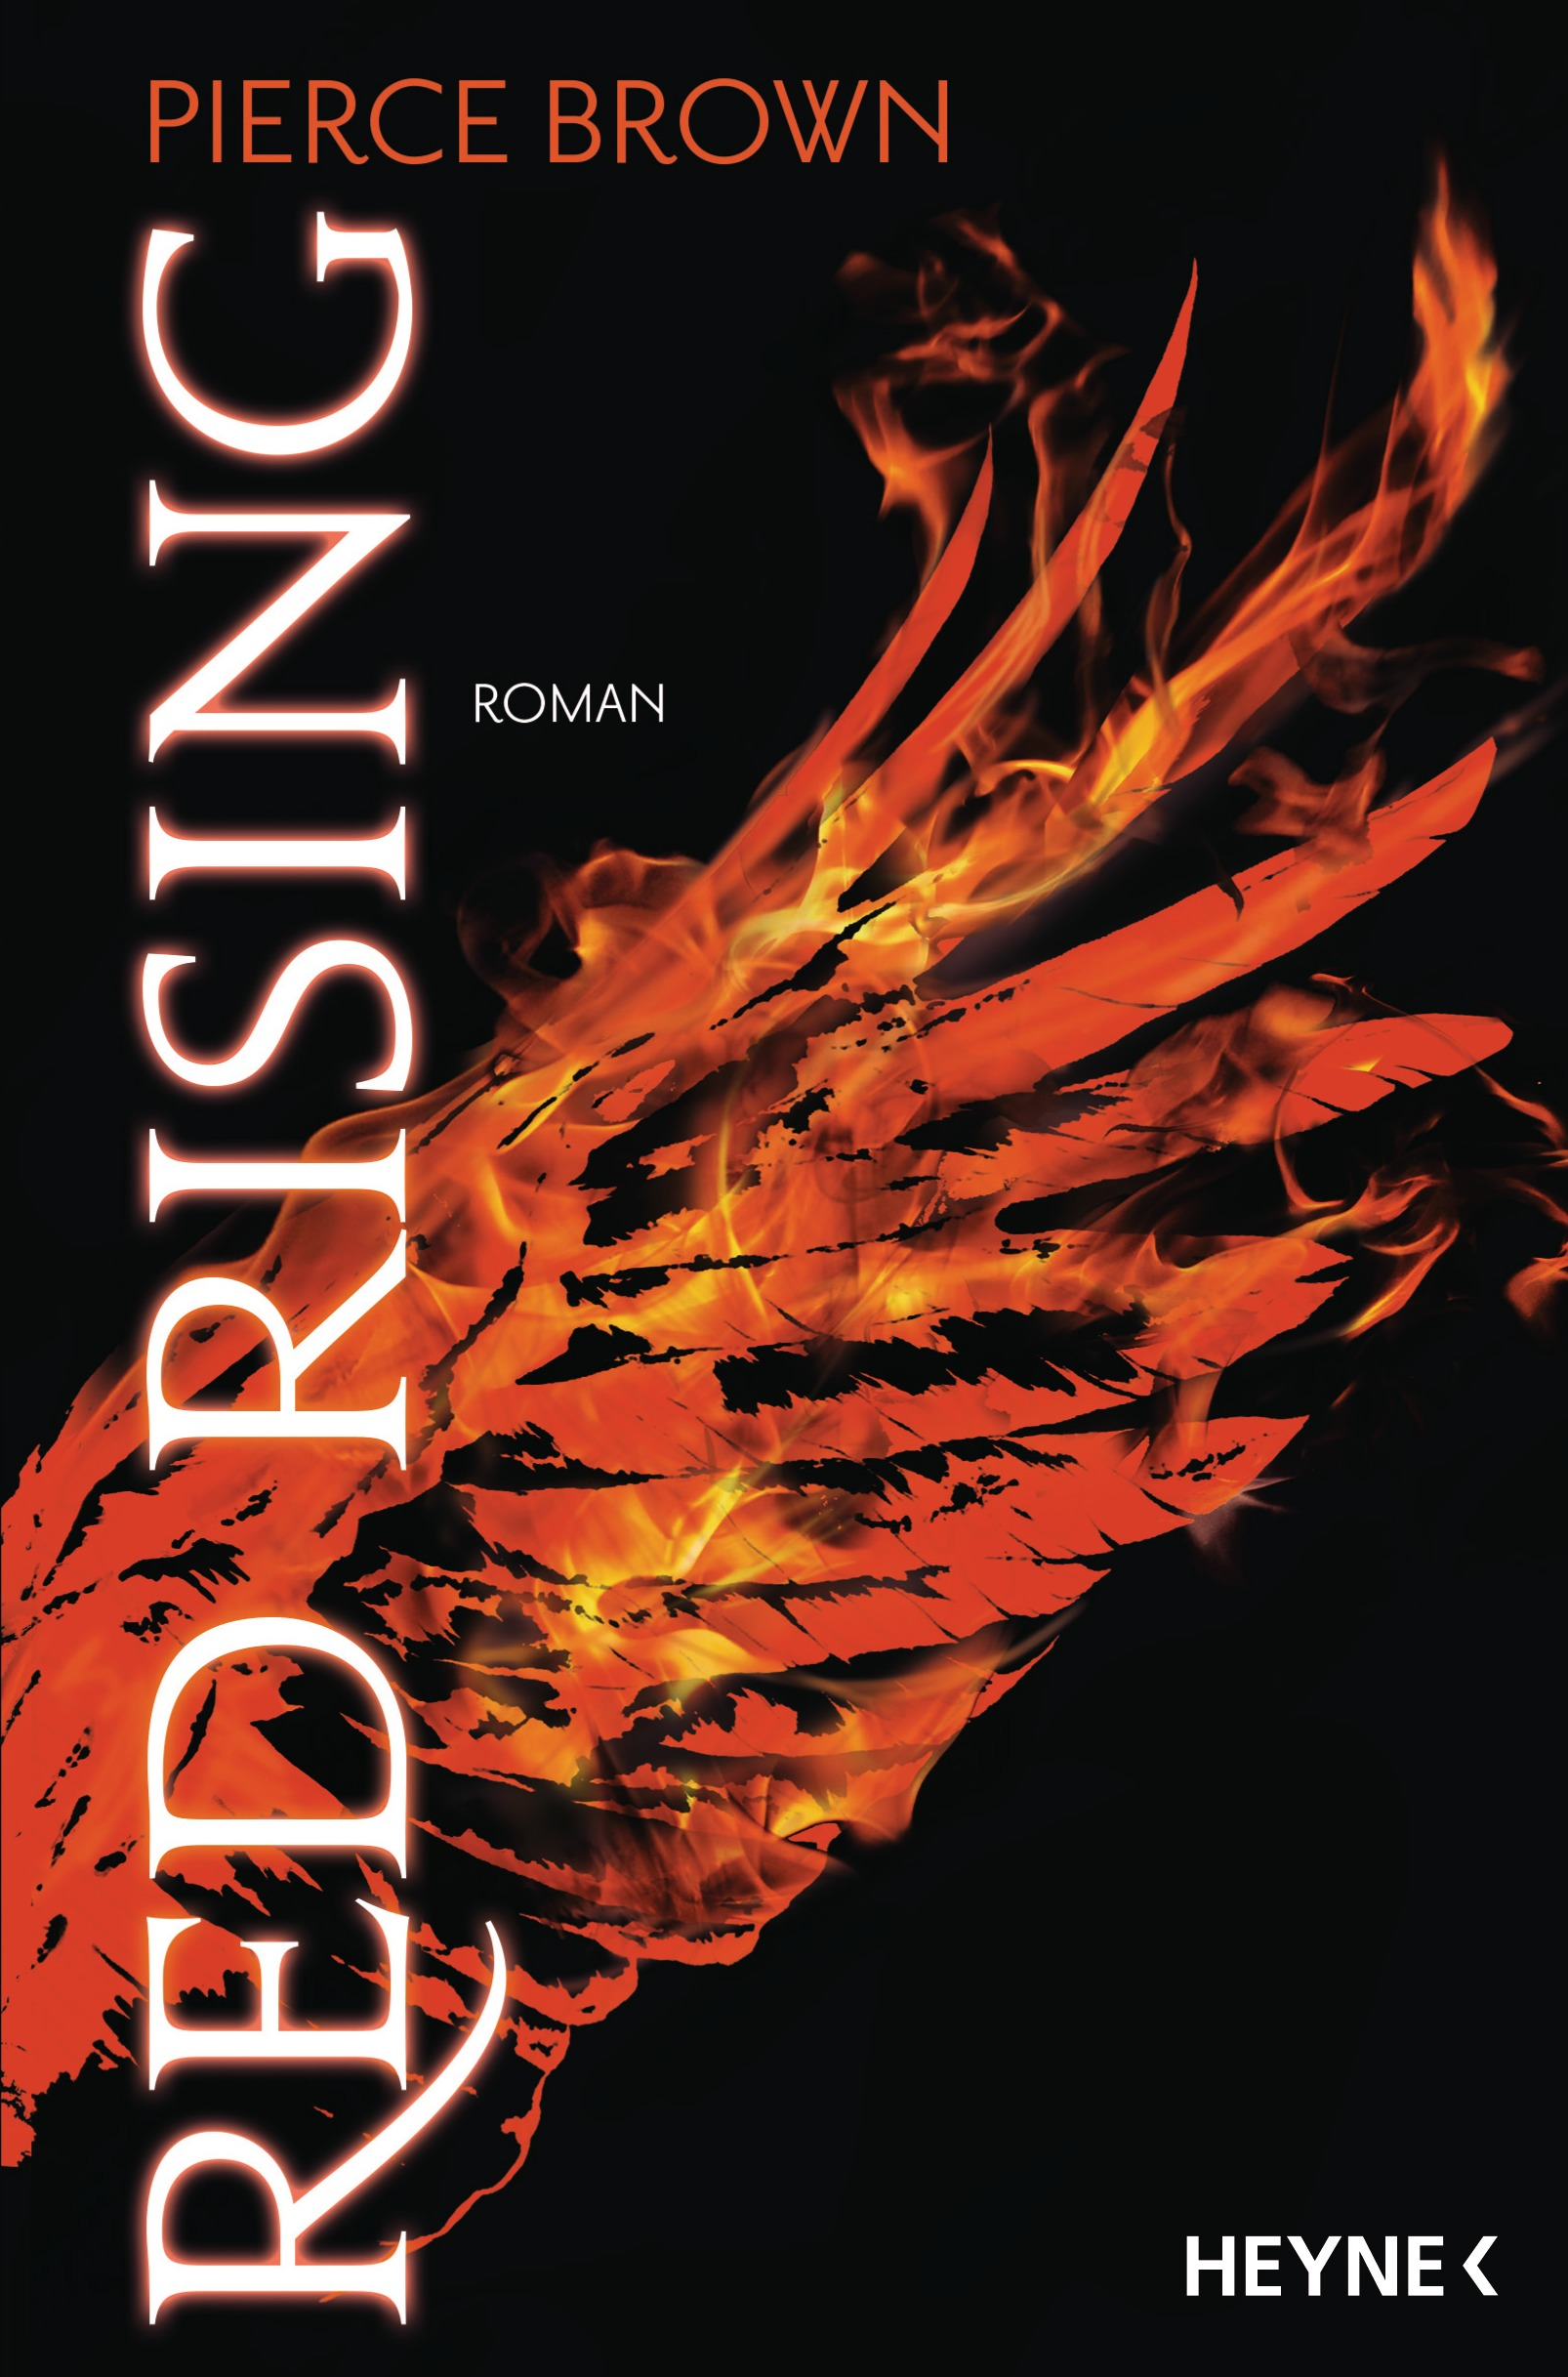 http://www.randomhouse.de/content/edition/covervoila_hires/Brown_PRed_Rising_1_161850.jpg